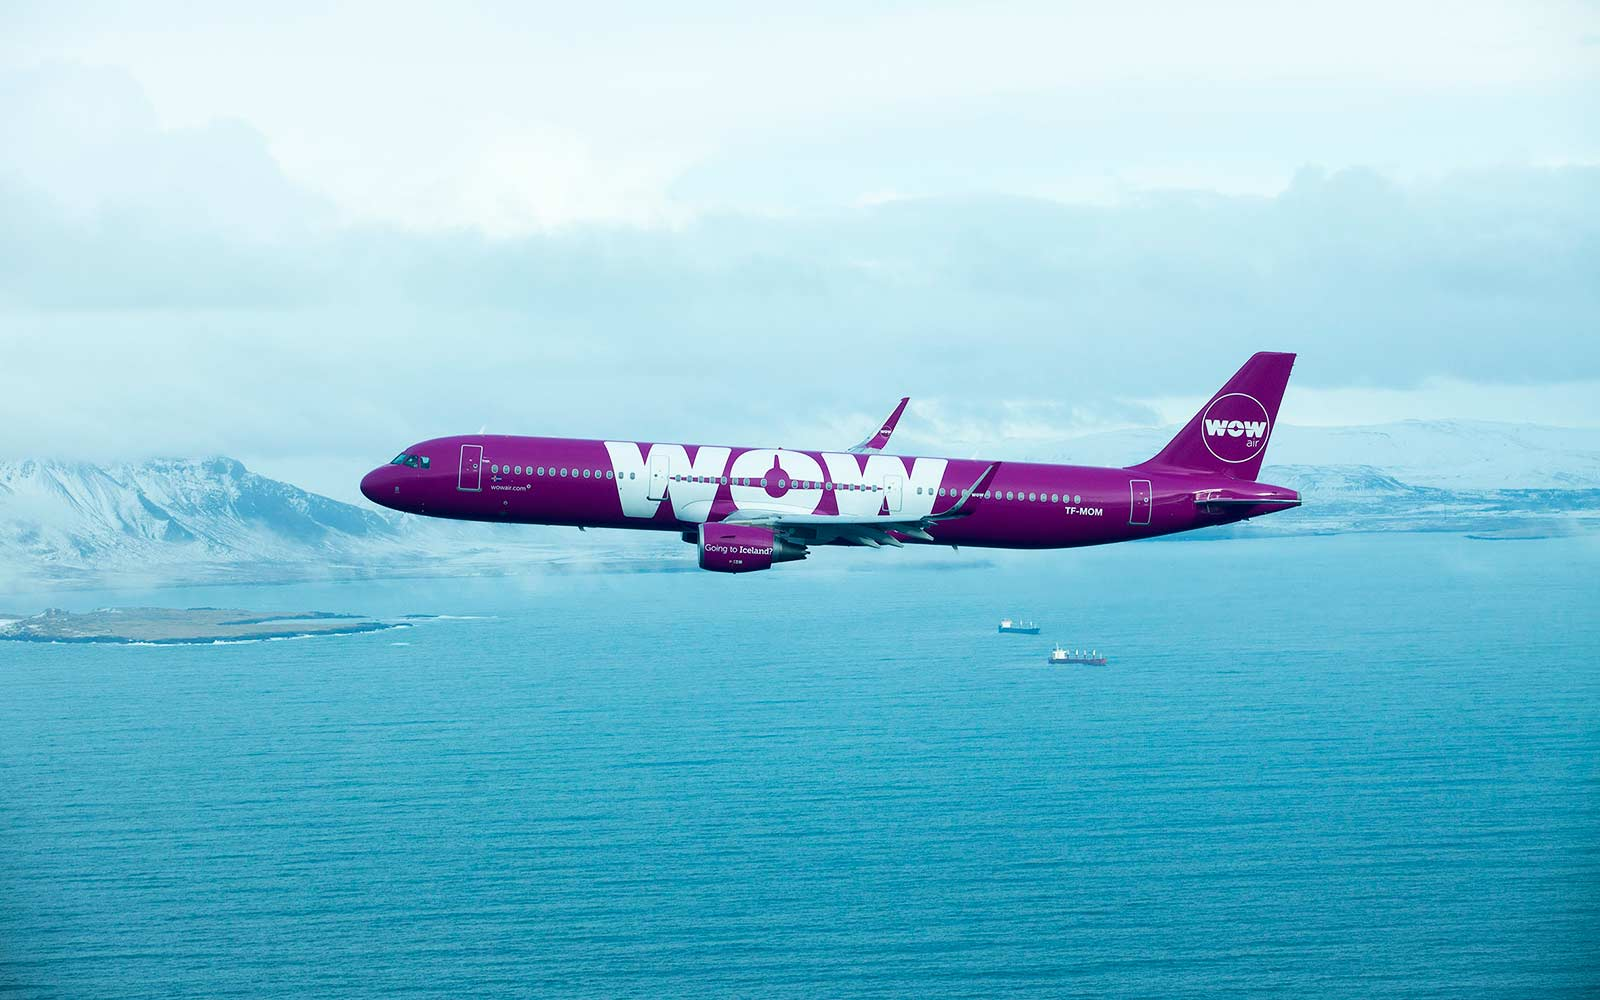 WOW Air has $99 Flights to Europe to Celebrate a New U.S. Route